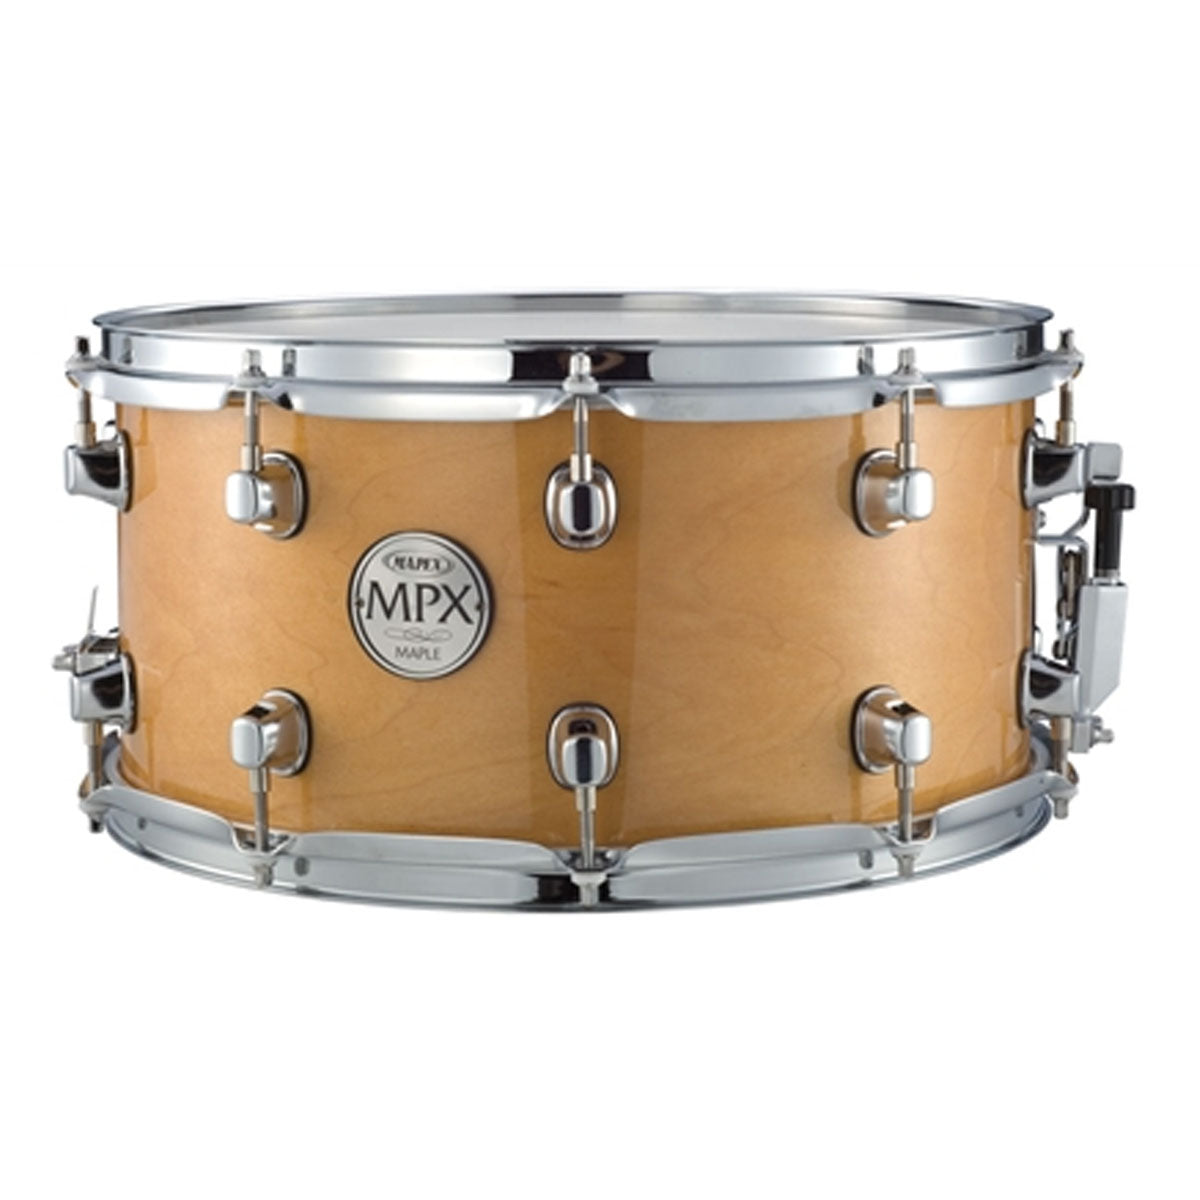 Mapex MPX Snare Drum Maple 14x7inch Gloss Natural w/ Chrome Hardware